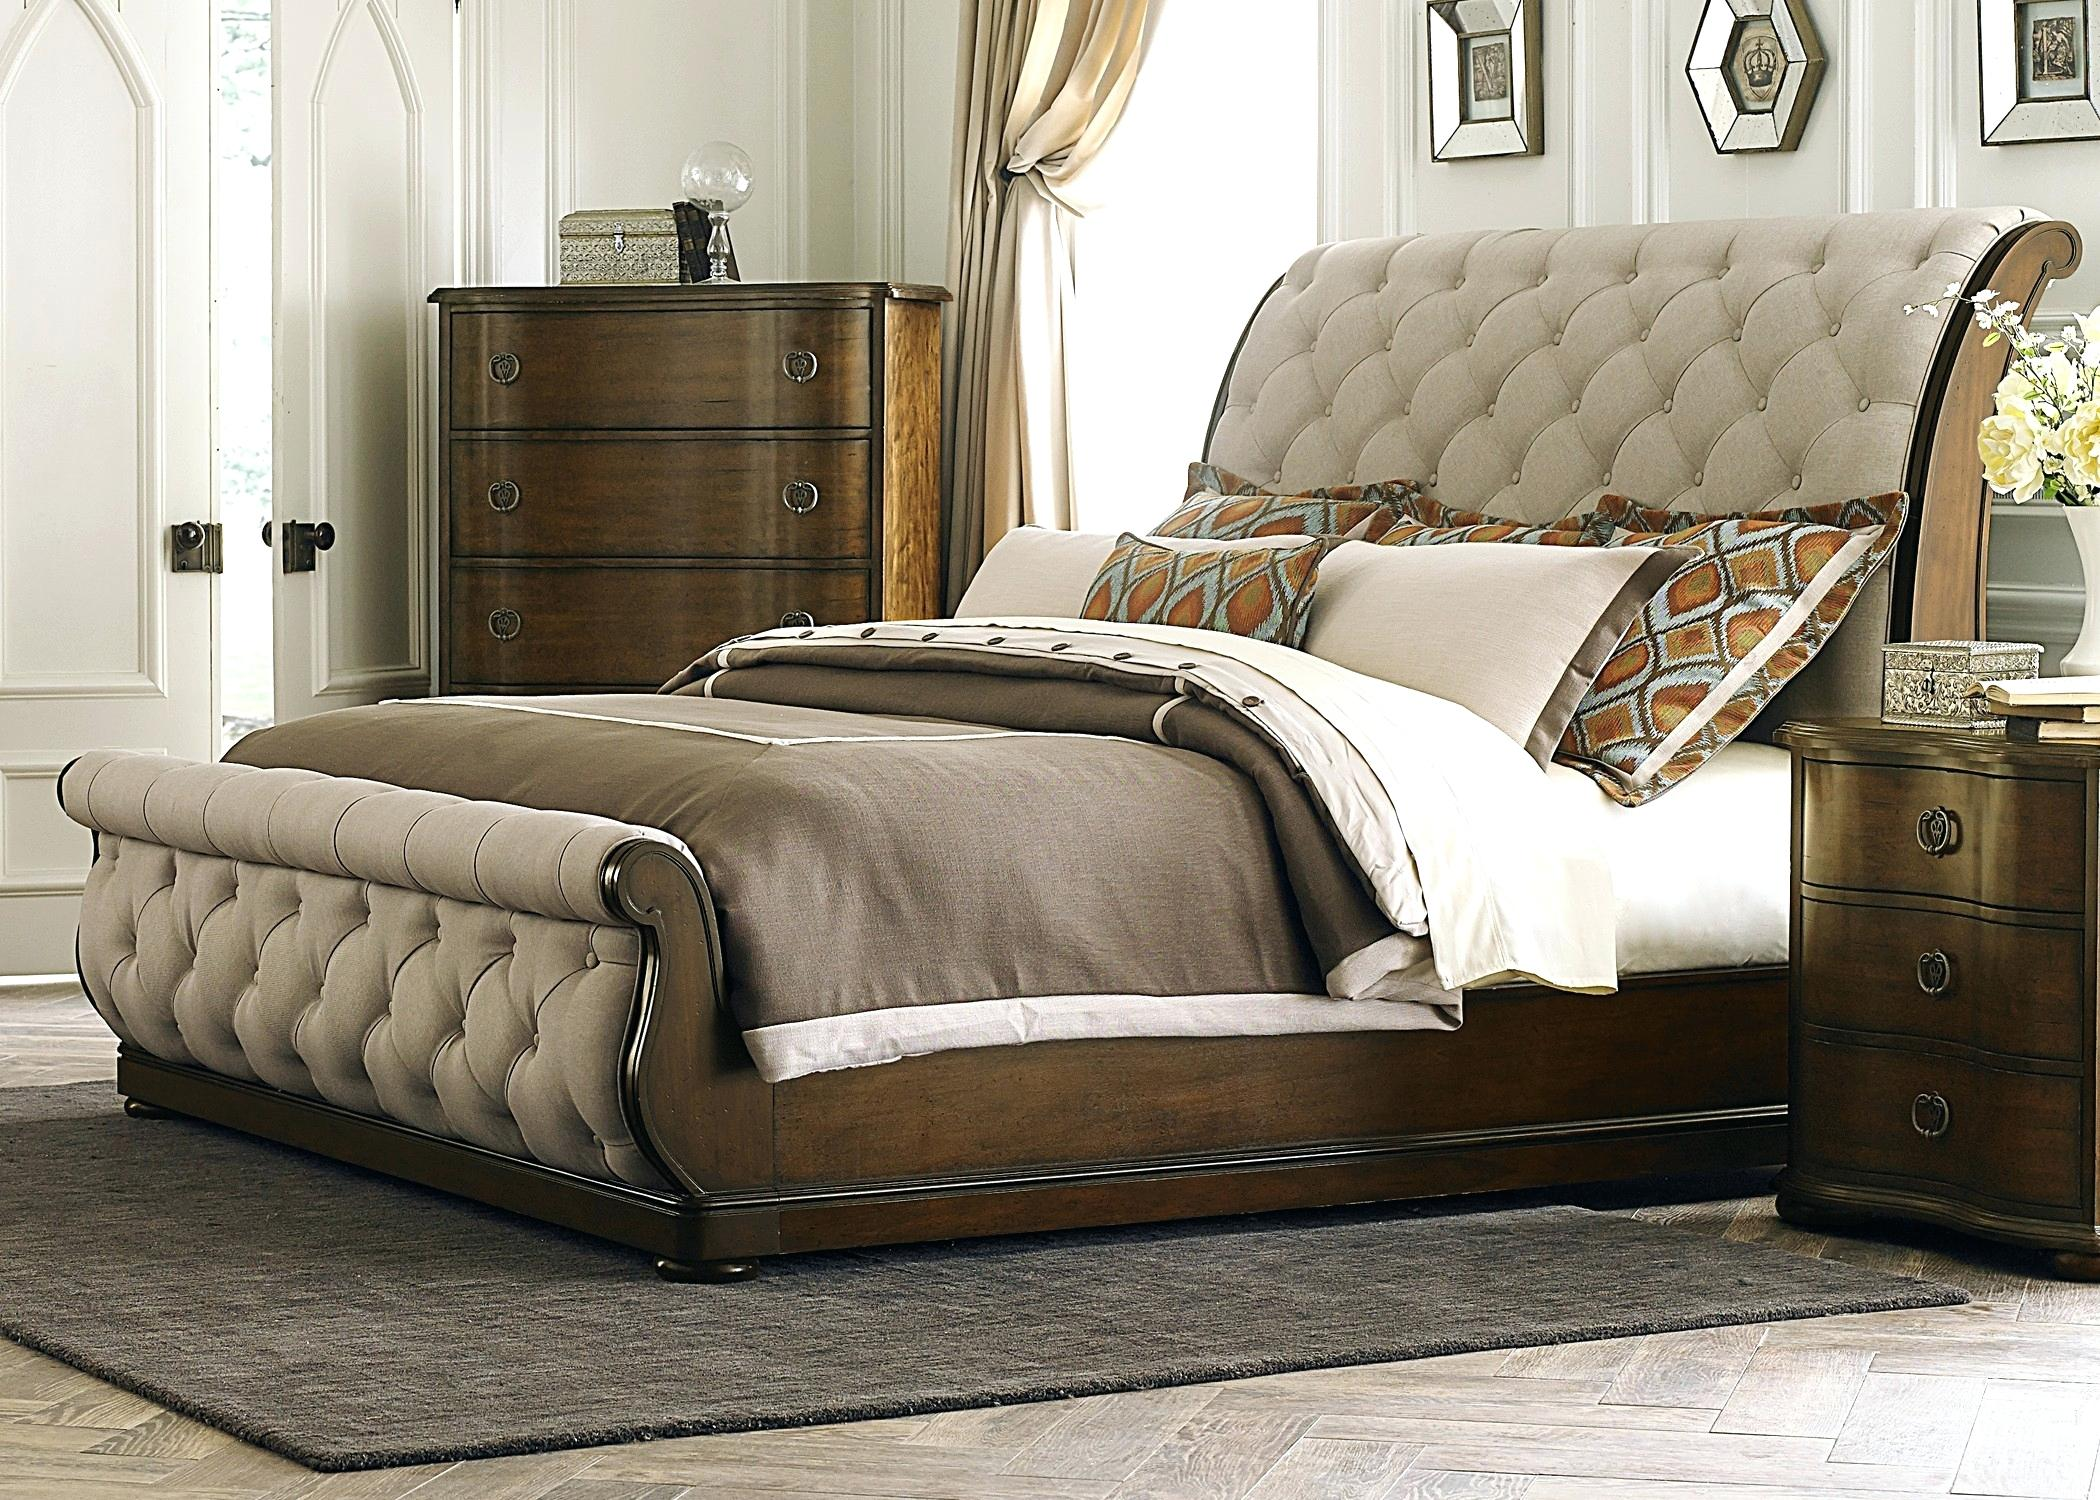 Platform Bed Headboard | Pottery Barn Sleigh Bed | Pottery Barn Valencia